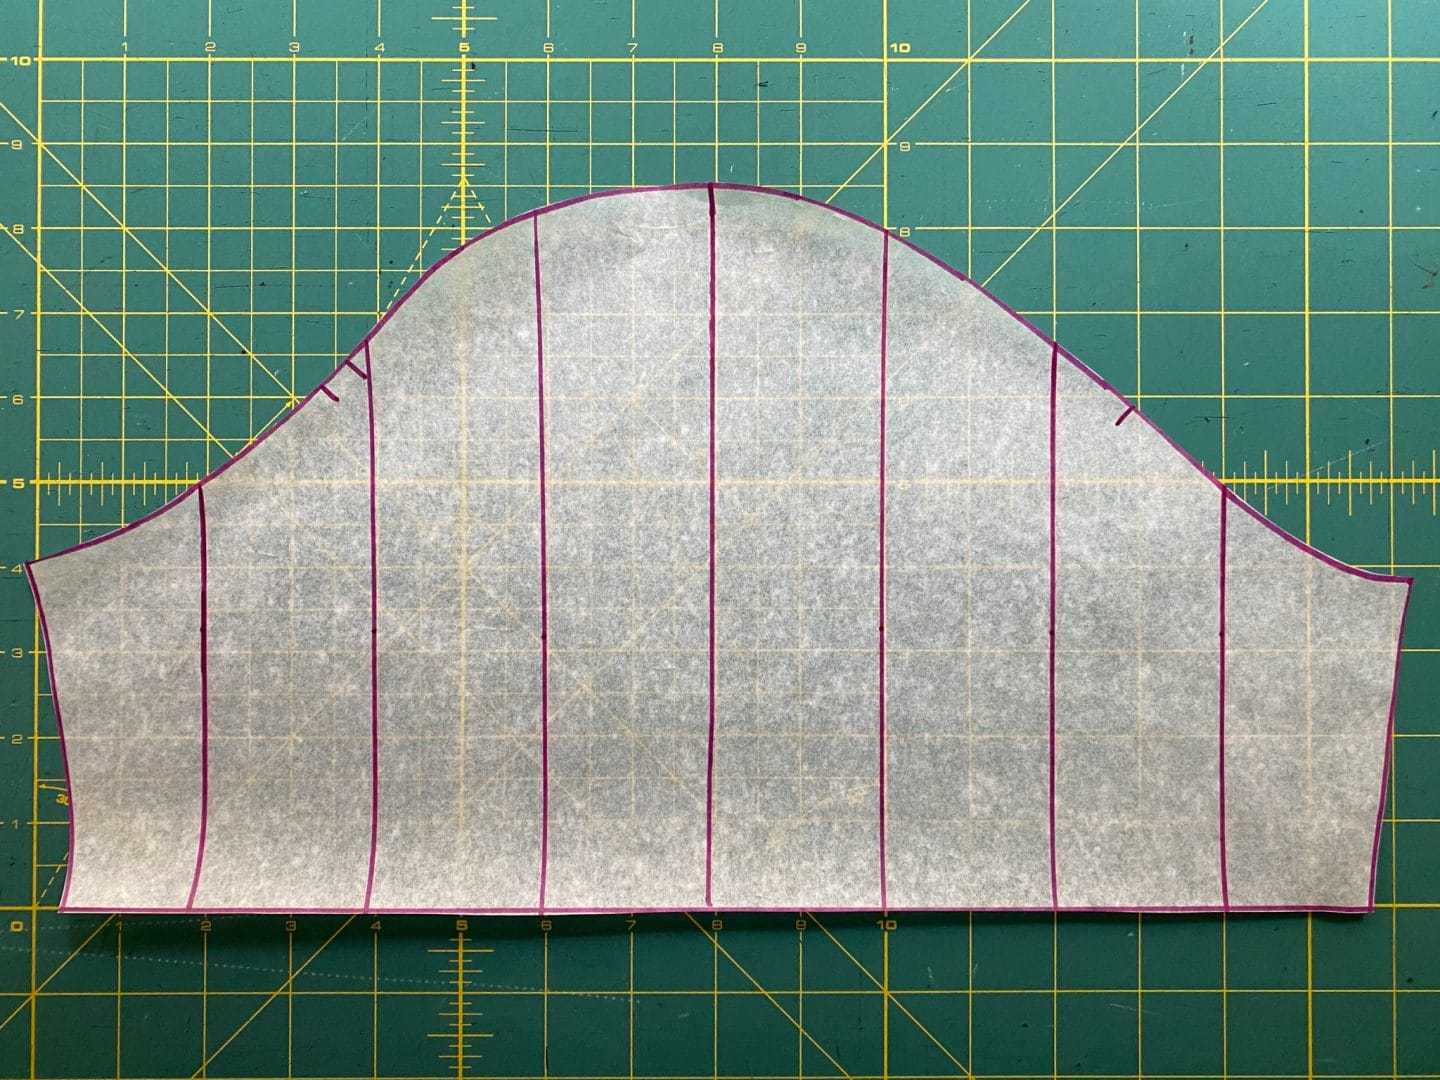 Image of the sleeve pattern with pink lines parallel to the grain line used as guide to cut into the pattern on a green background.